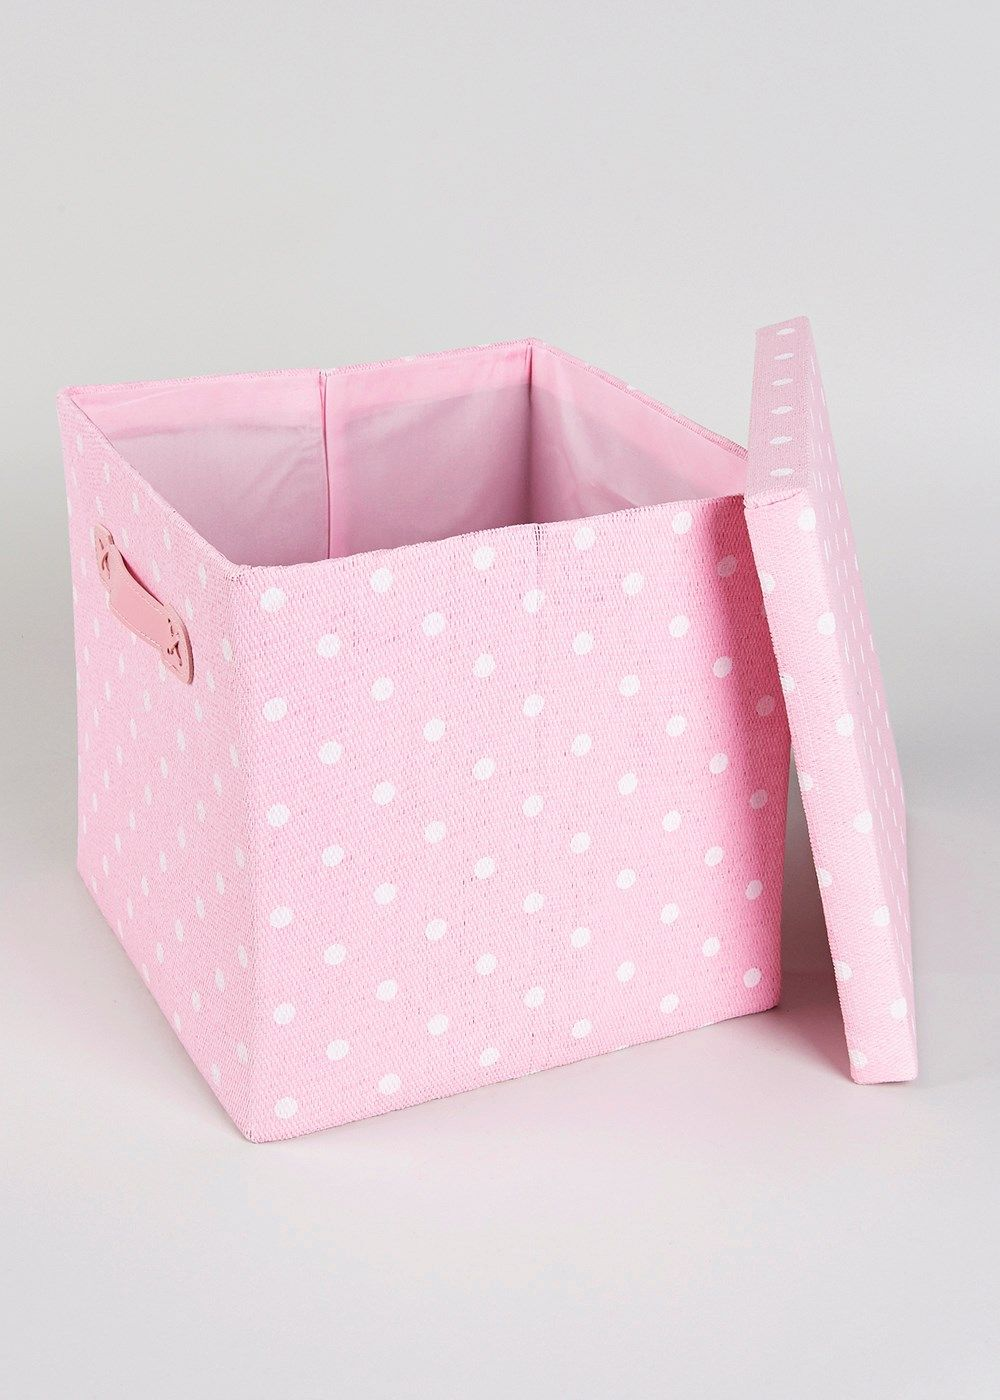 Best Bedroom Storage Box 33Cm X 33Cm X 31Cm Matalan 400 x 300